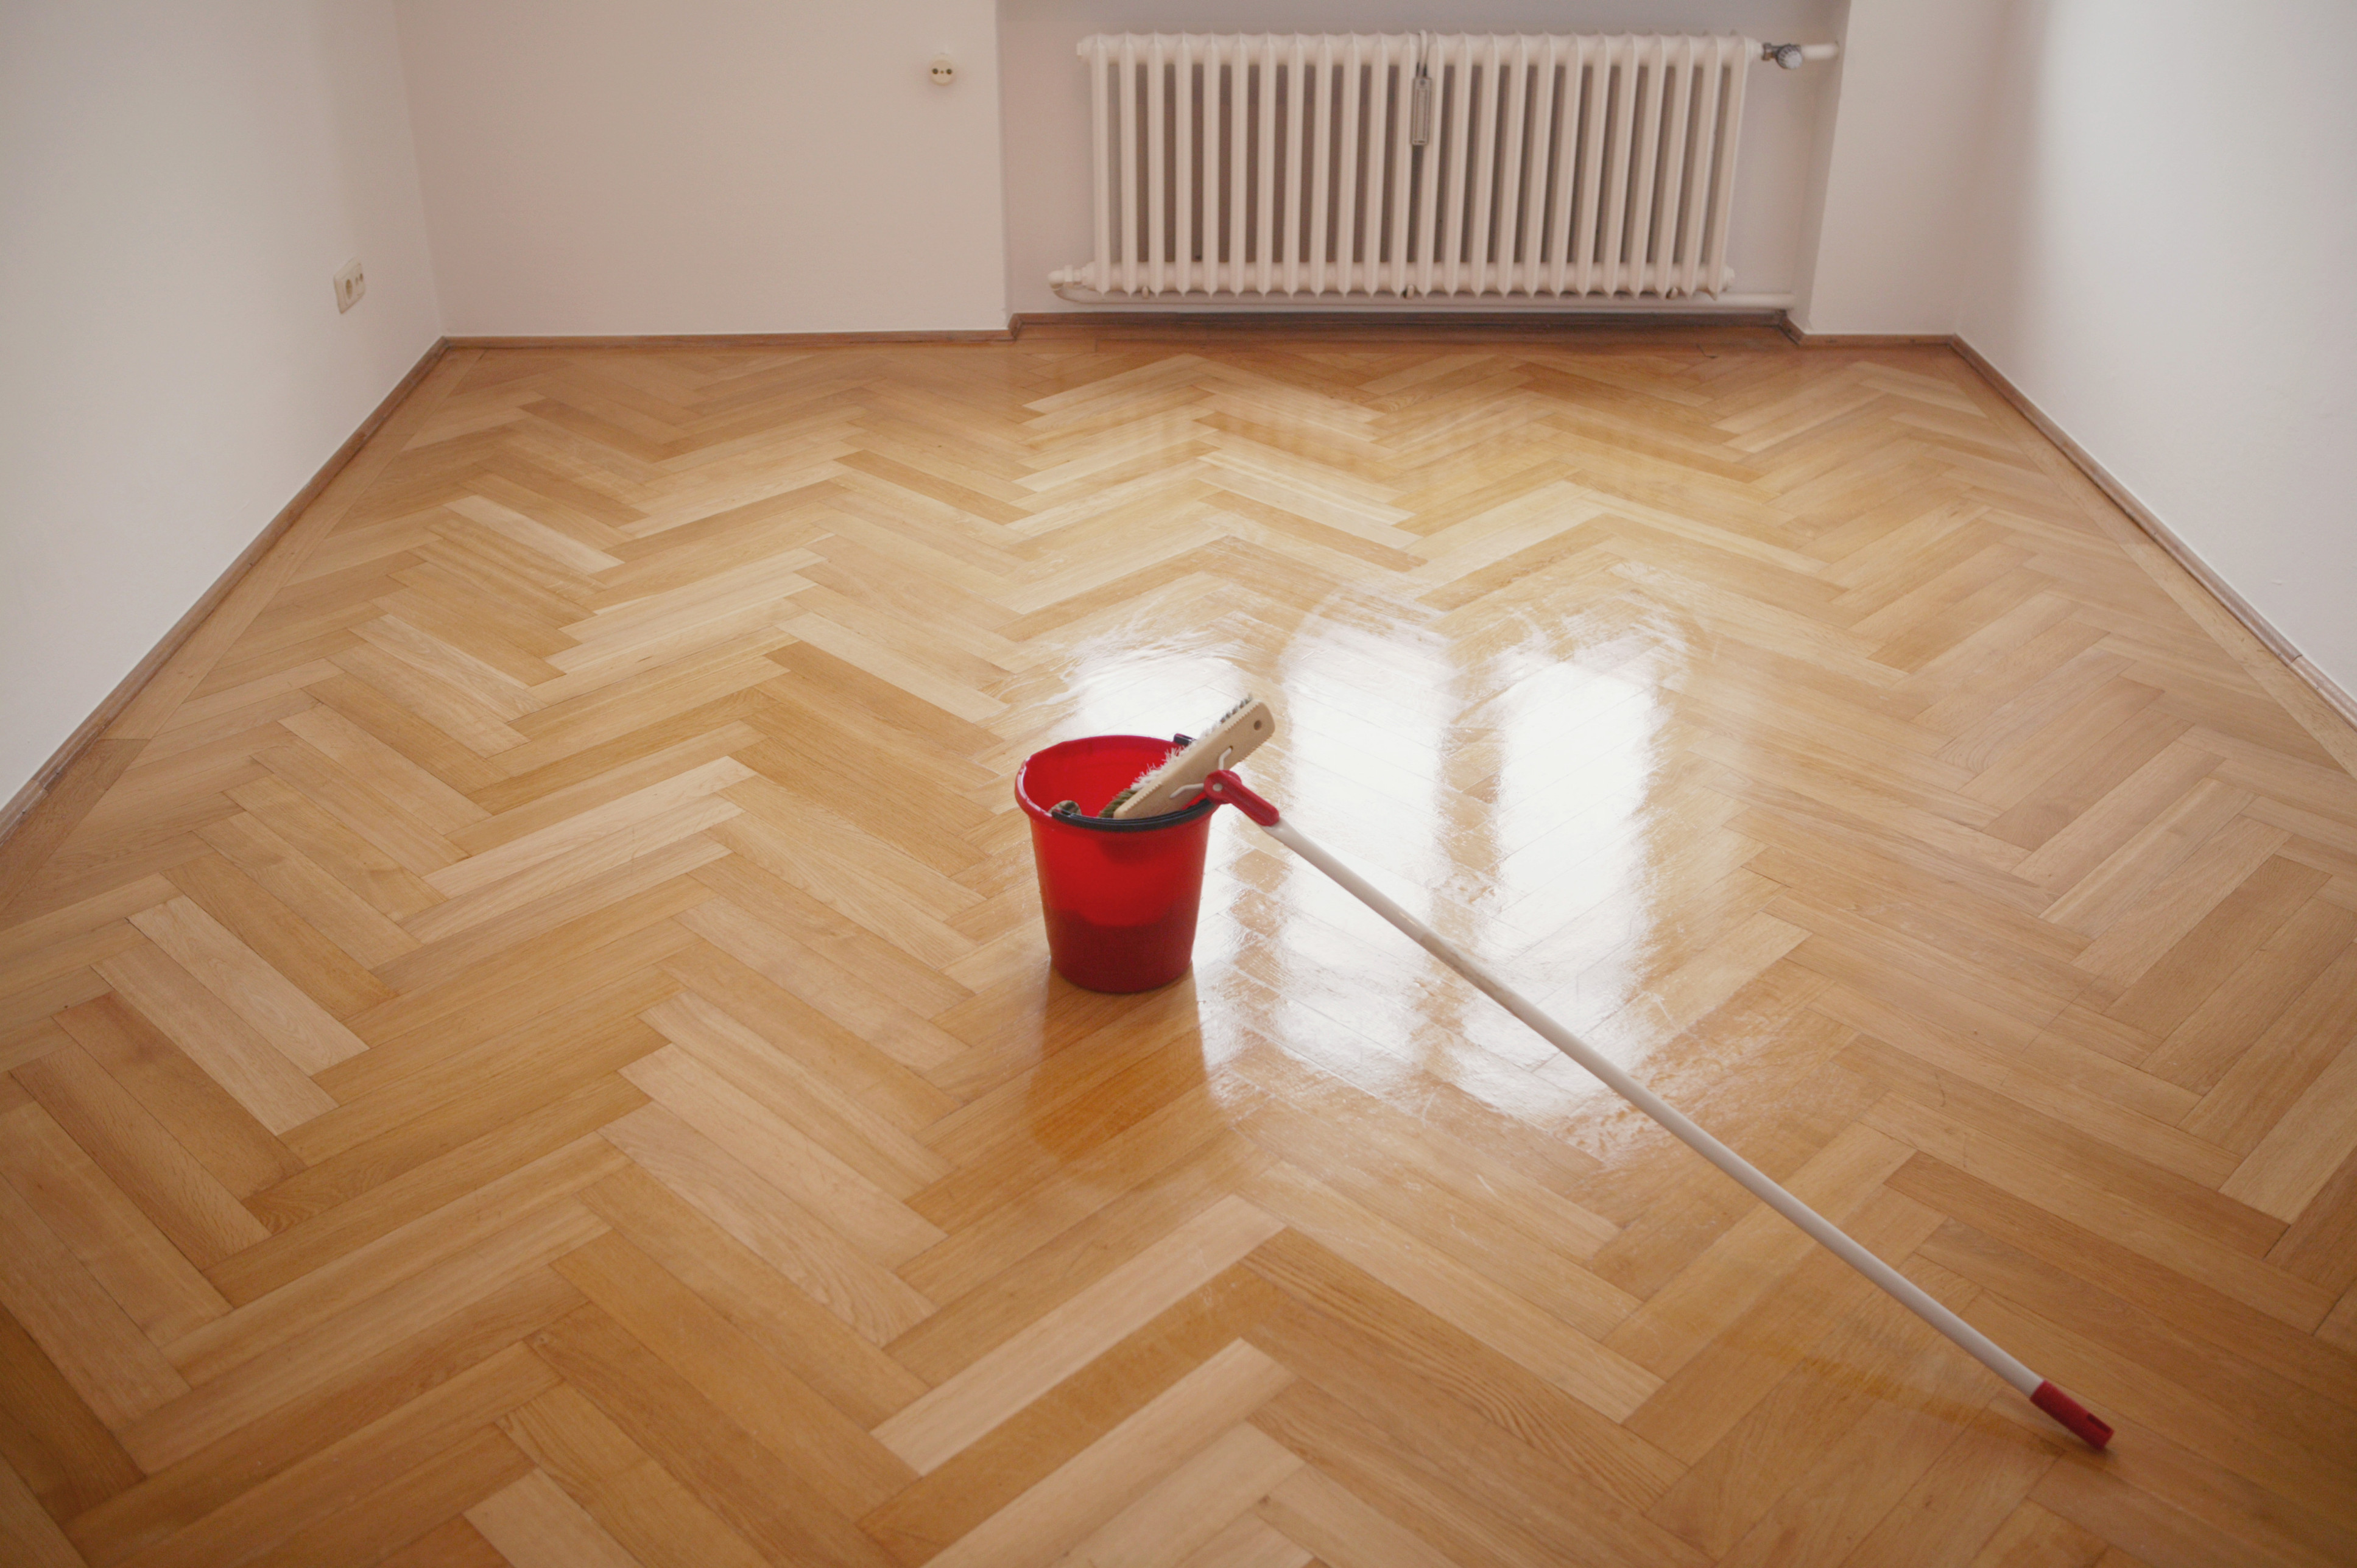 9 Things You39re Doing To Ruin Your Hardwood Floors Without Even Realizing It Huffpost Life